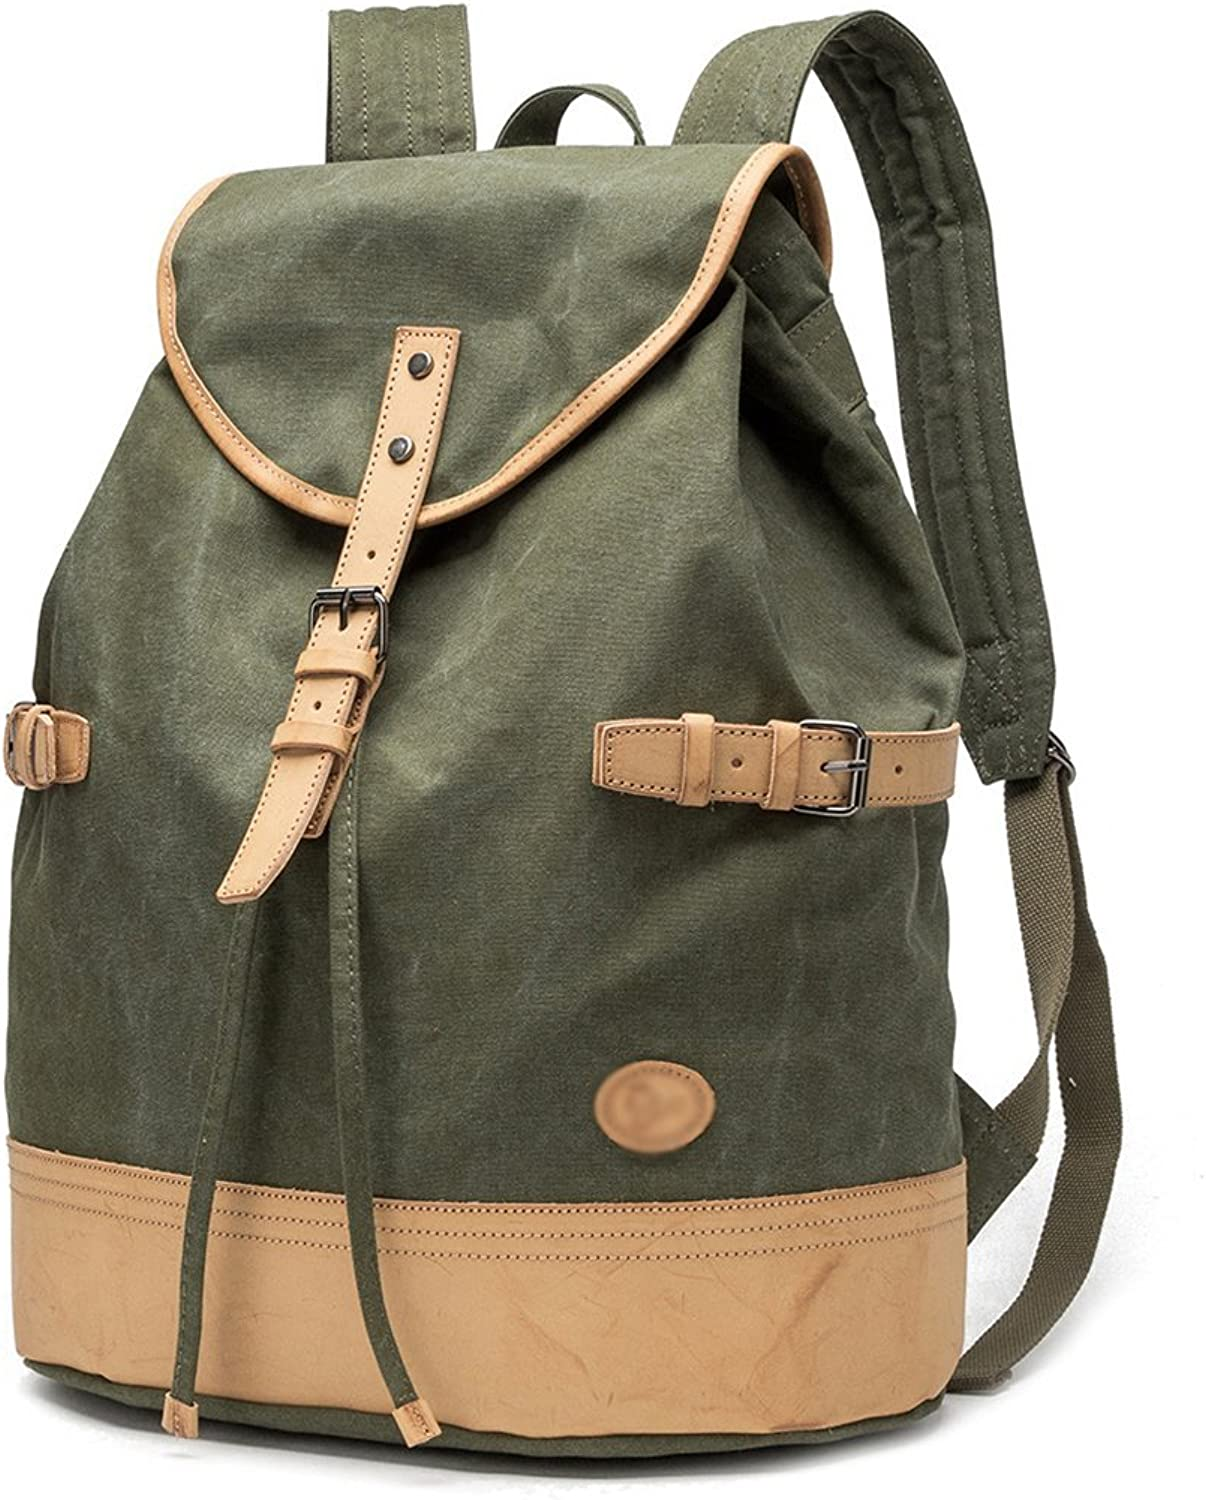 LLQ.LQ Backpack Canvas Retro Student School Bag Outdoor High Capacity Travel Bag Male Female Backpack Leisure Portable Multifunction Travel greenical Section AntiTheft